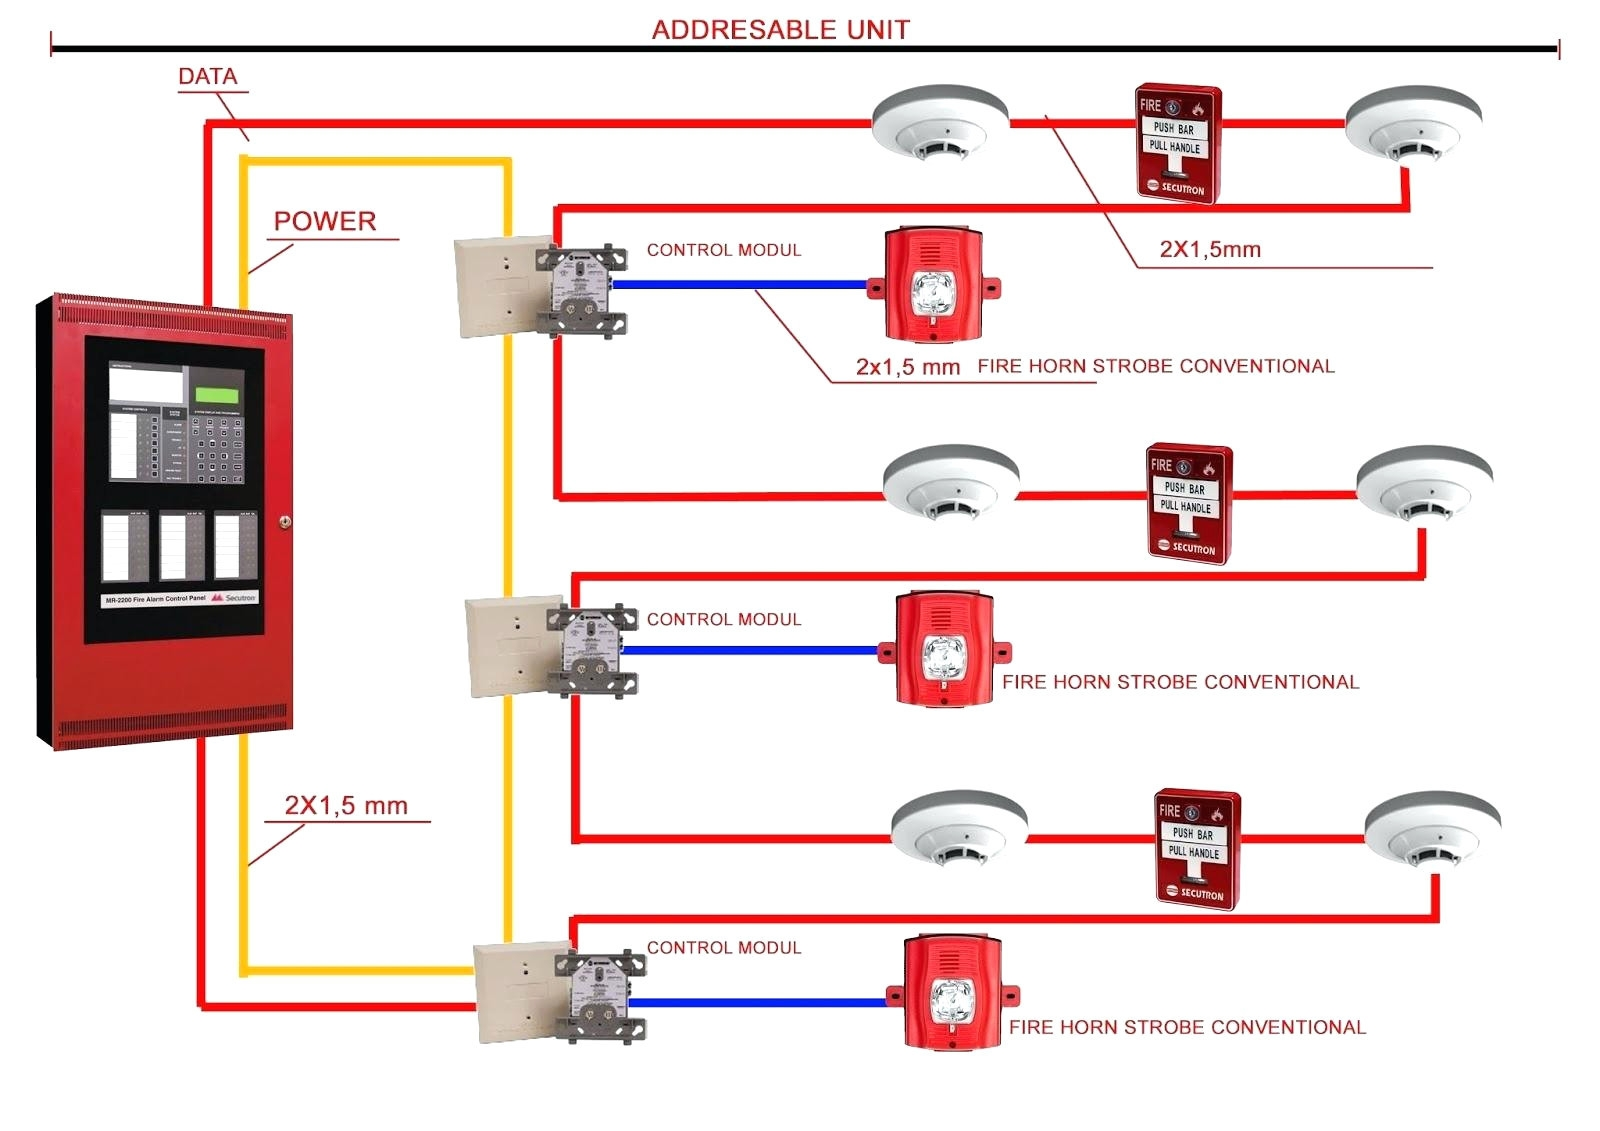 fire alarm control panel wiring diagram Download-Circuit Diagram Addressable Fire Alarm System Wiring Pdf And With Lovely Control Panel 14-r